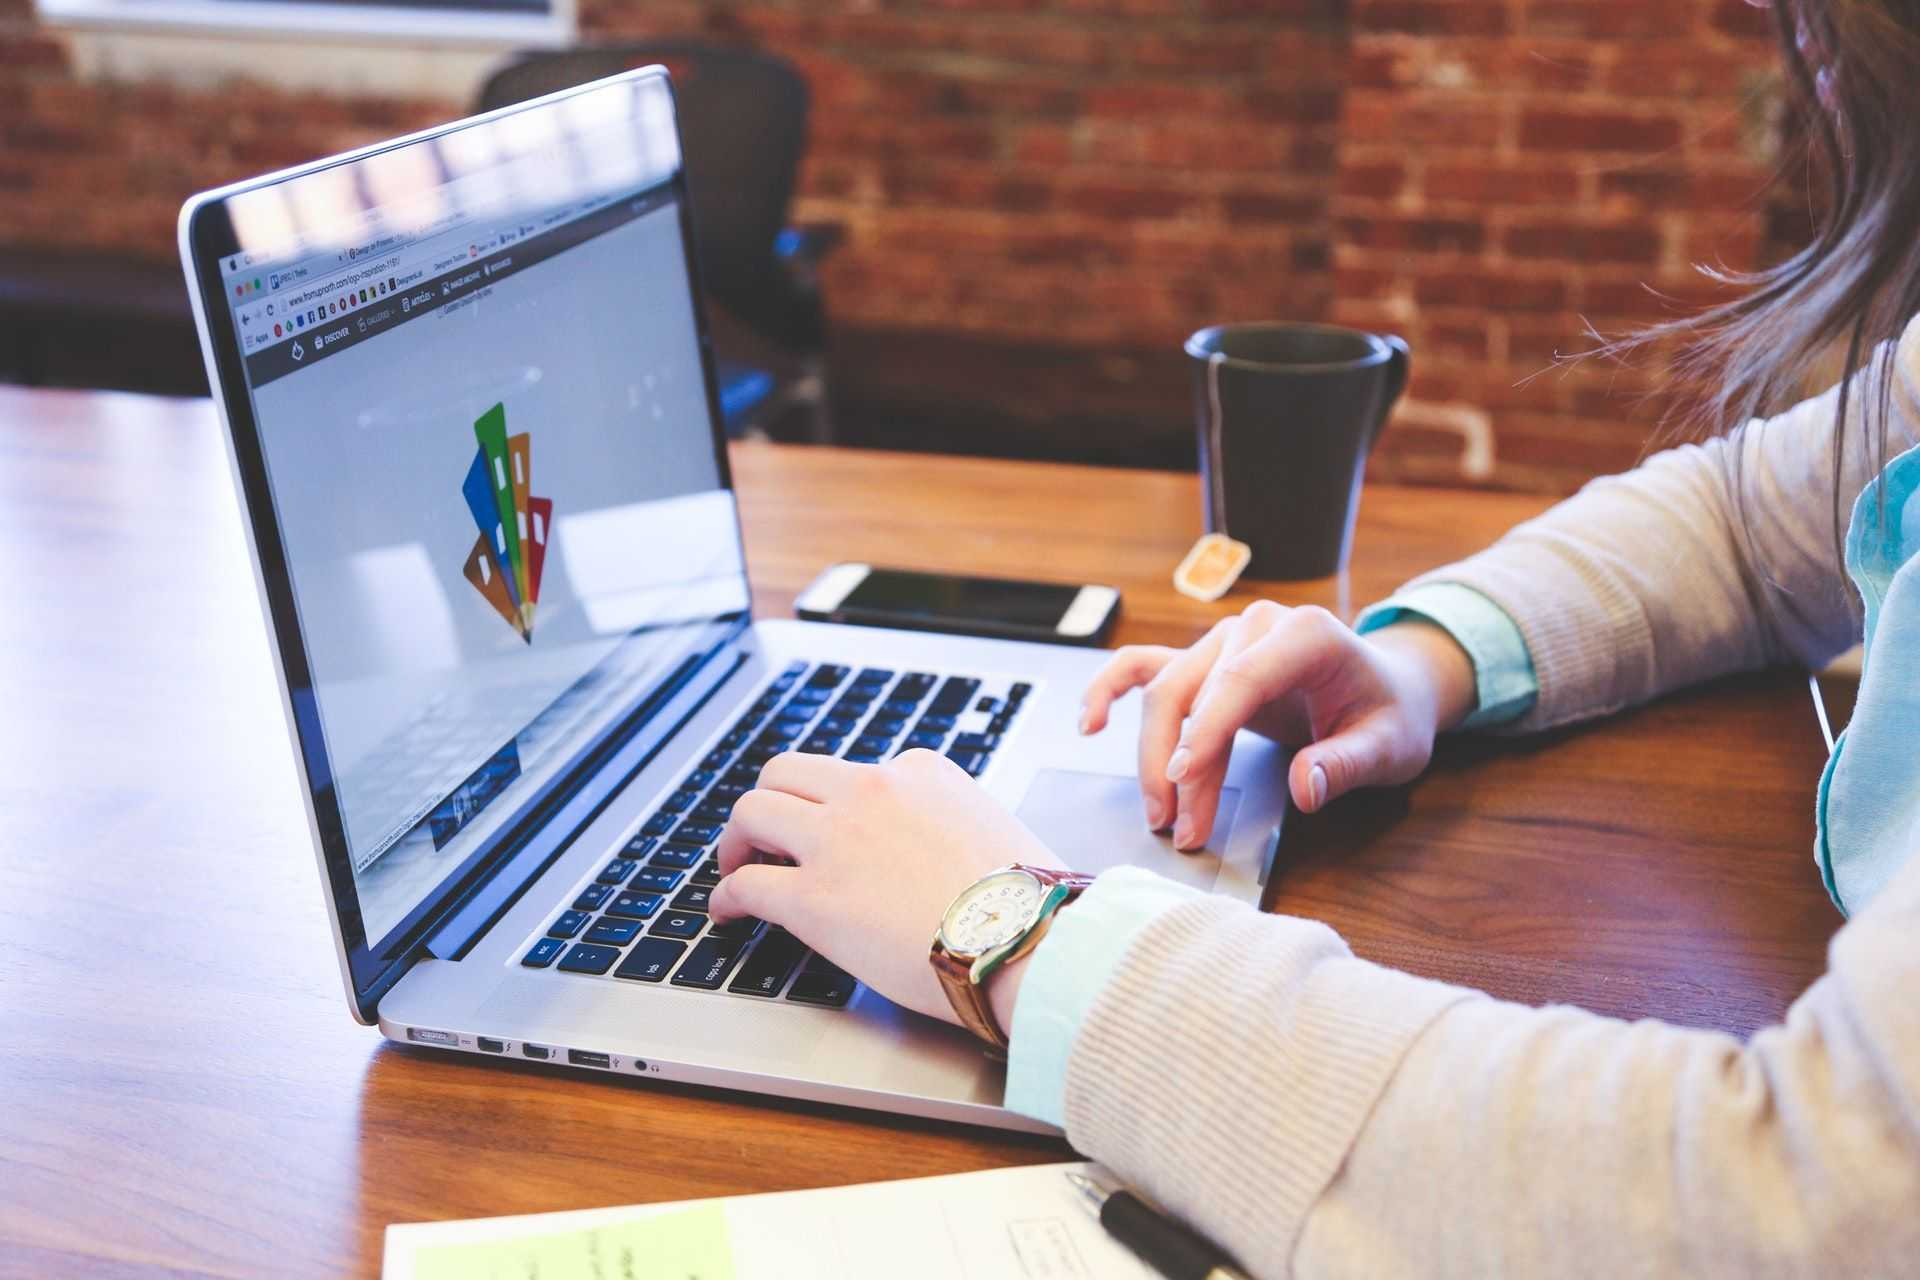 Top Hires to Take Your Web-Based Project to the Next Level